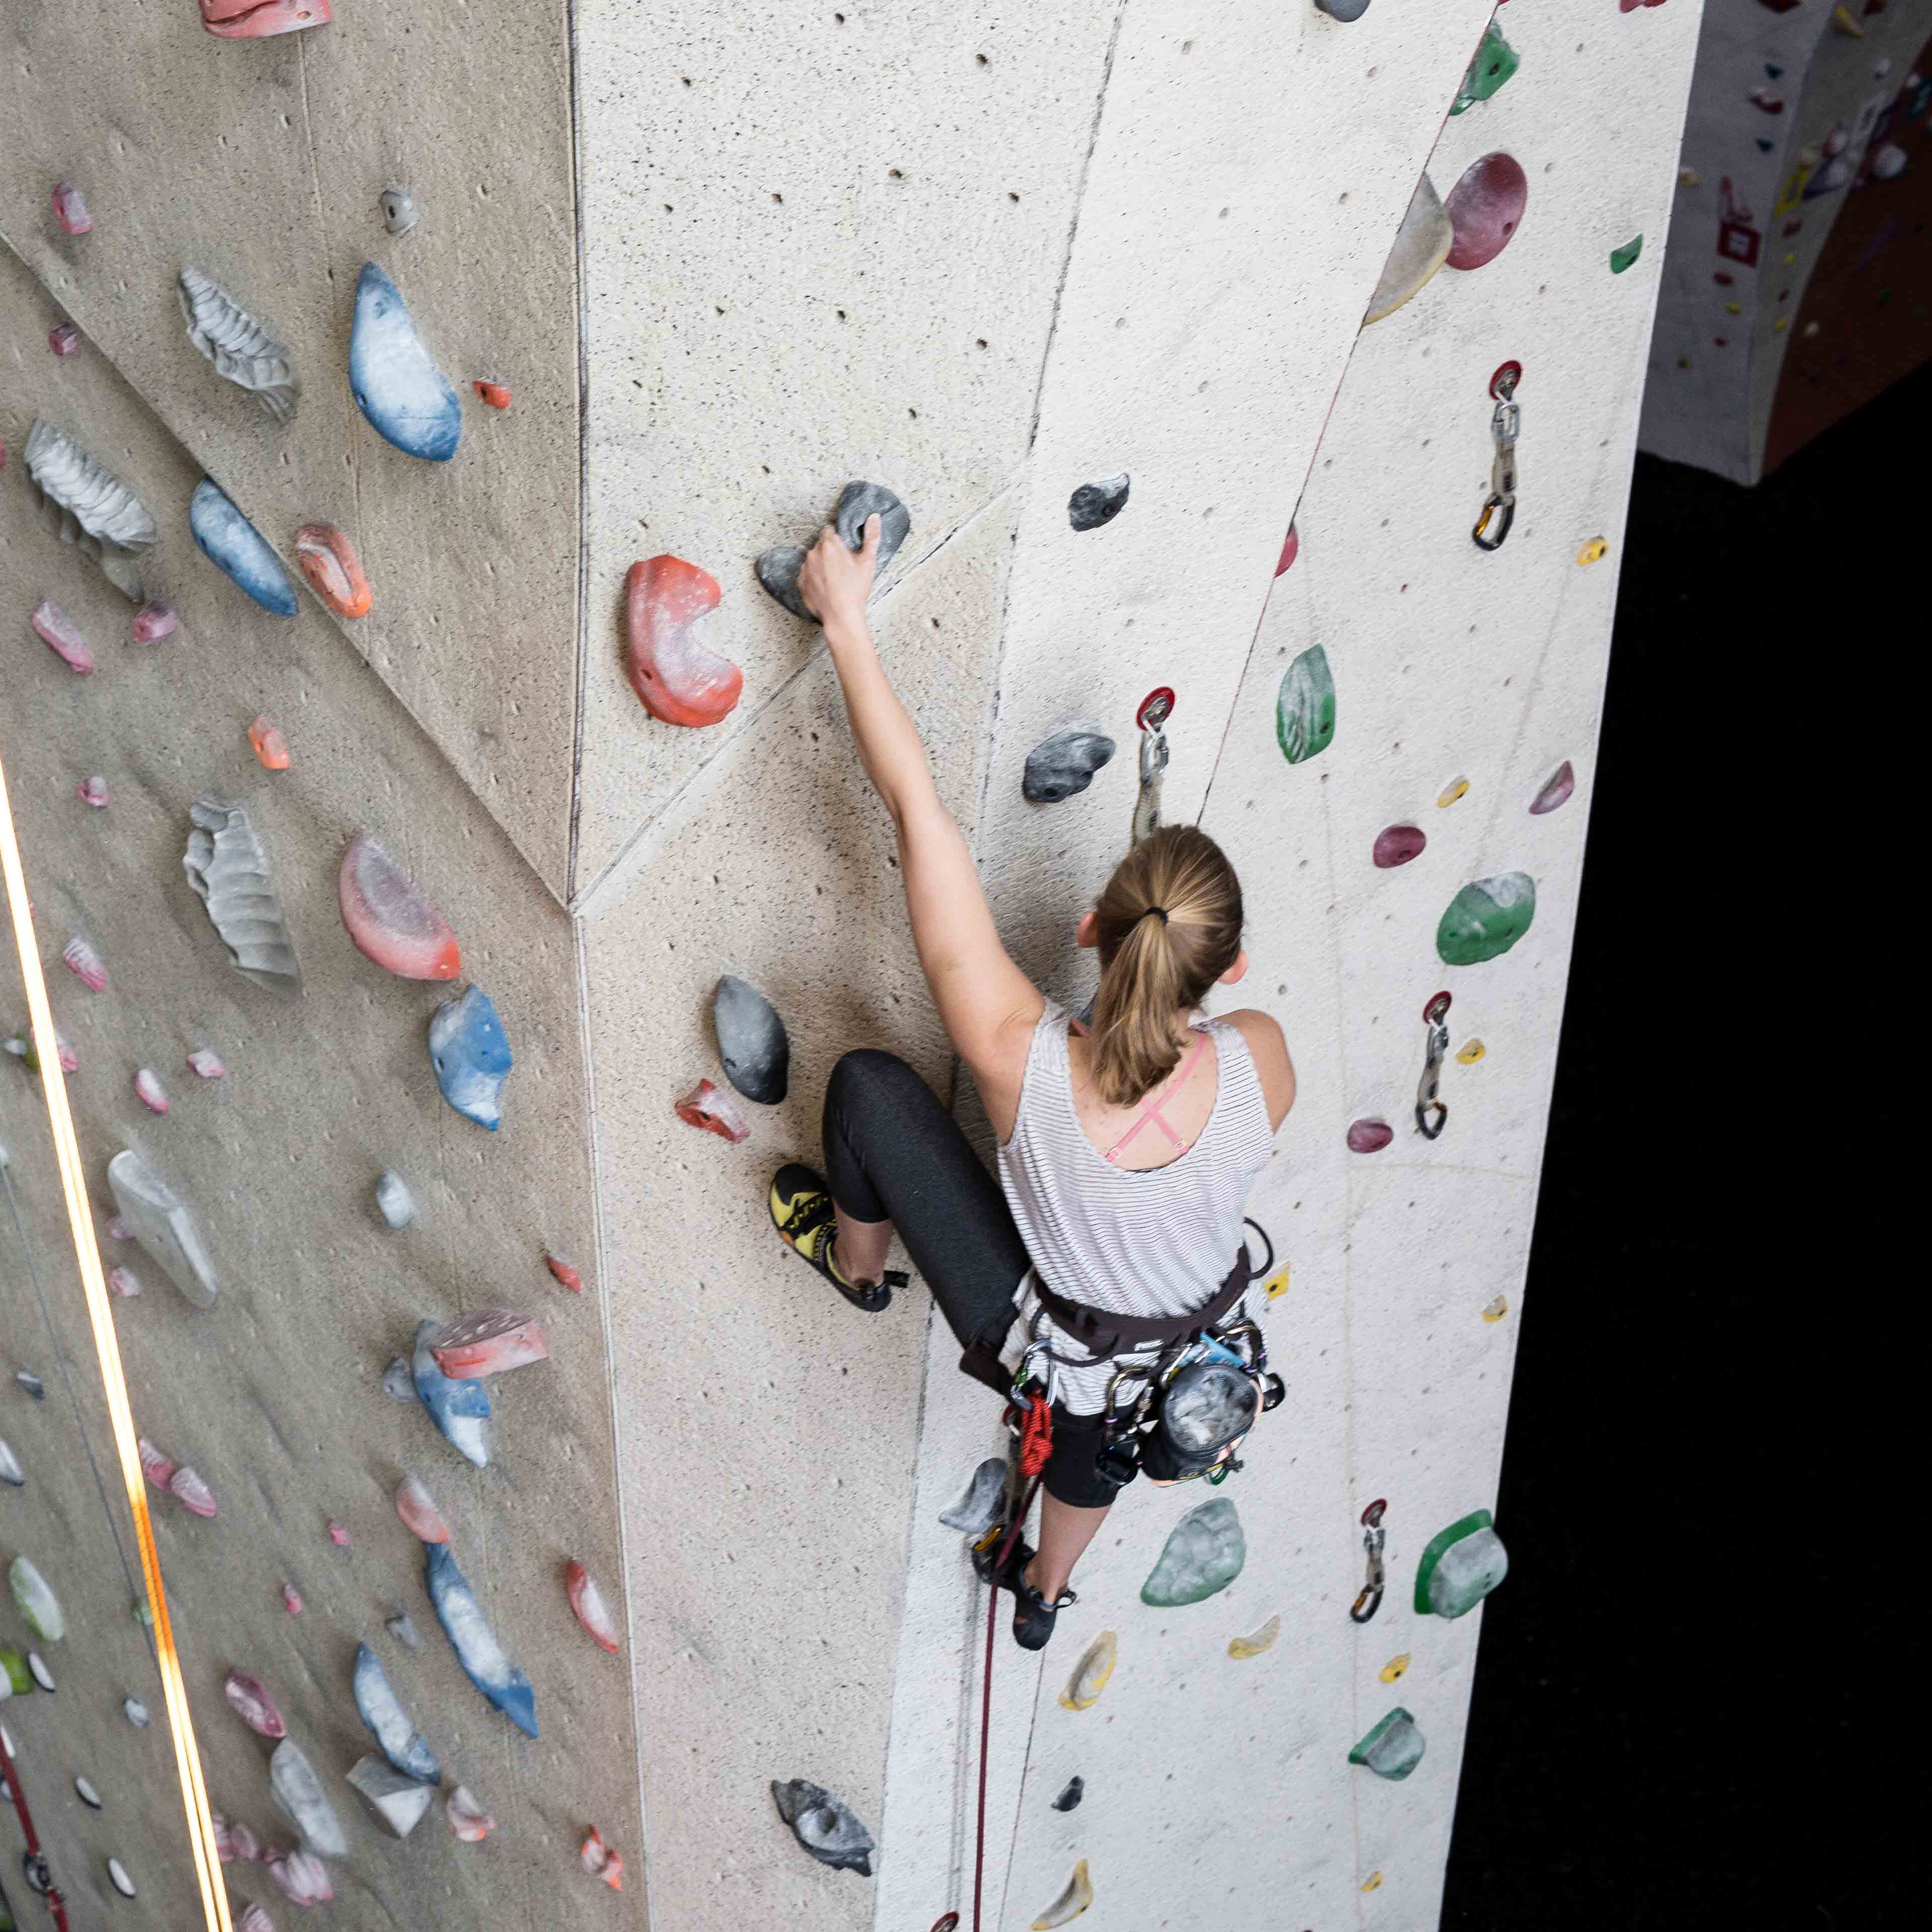 N_Lifestyle_Walls_Climbers_Holds_Bloomington_4